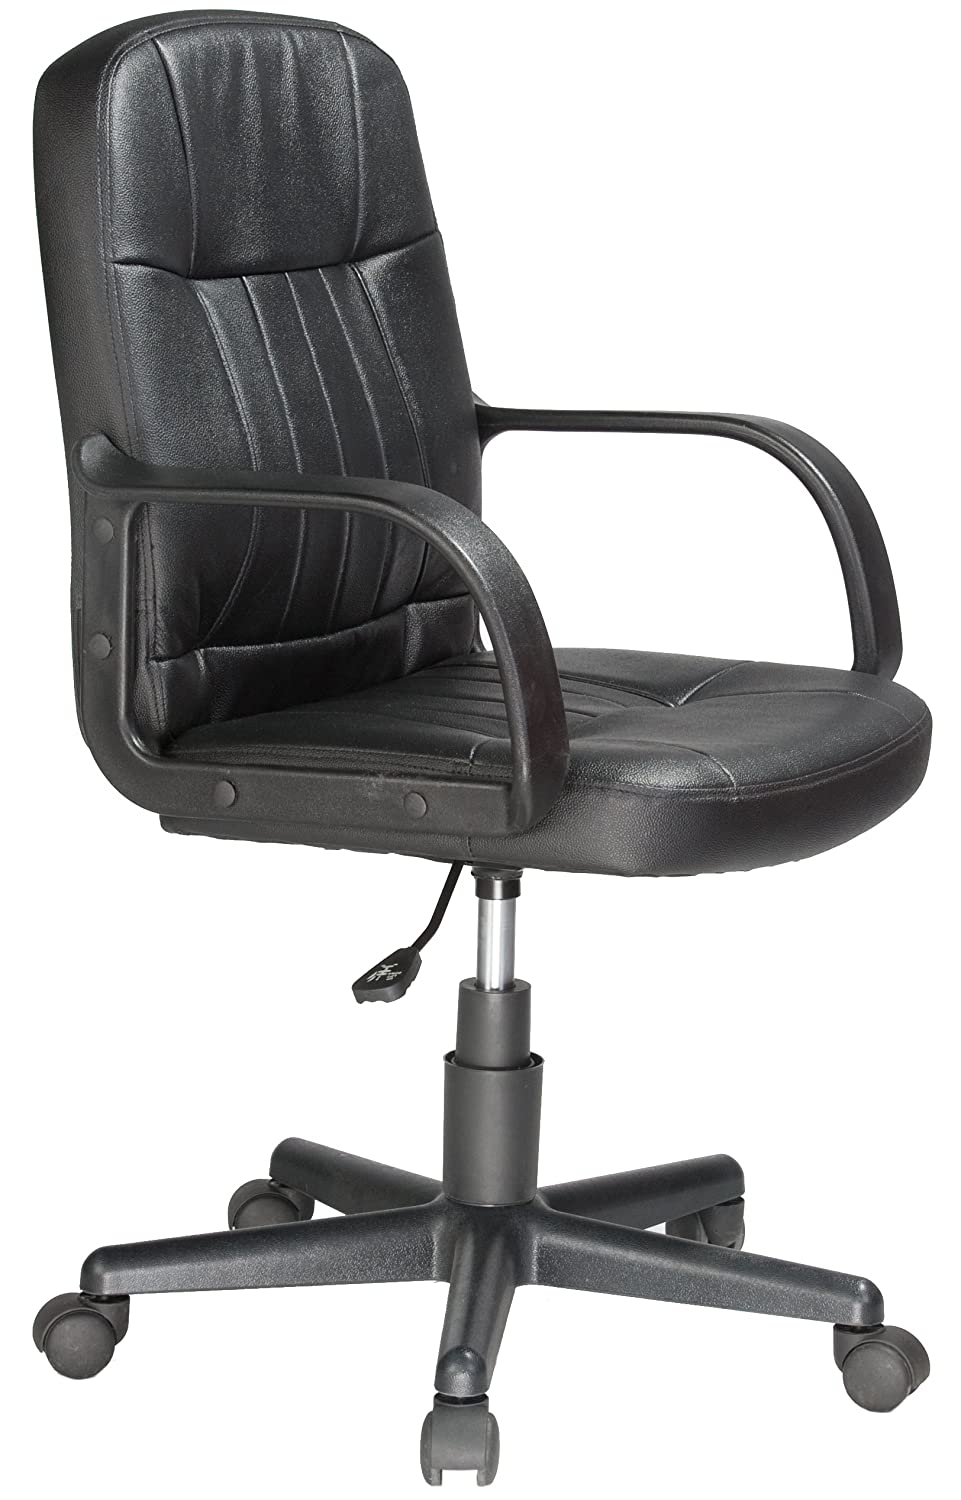 Comfort Products Leather Mid-Back Chair, Black 60-5607M